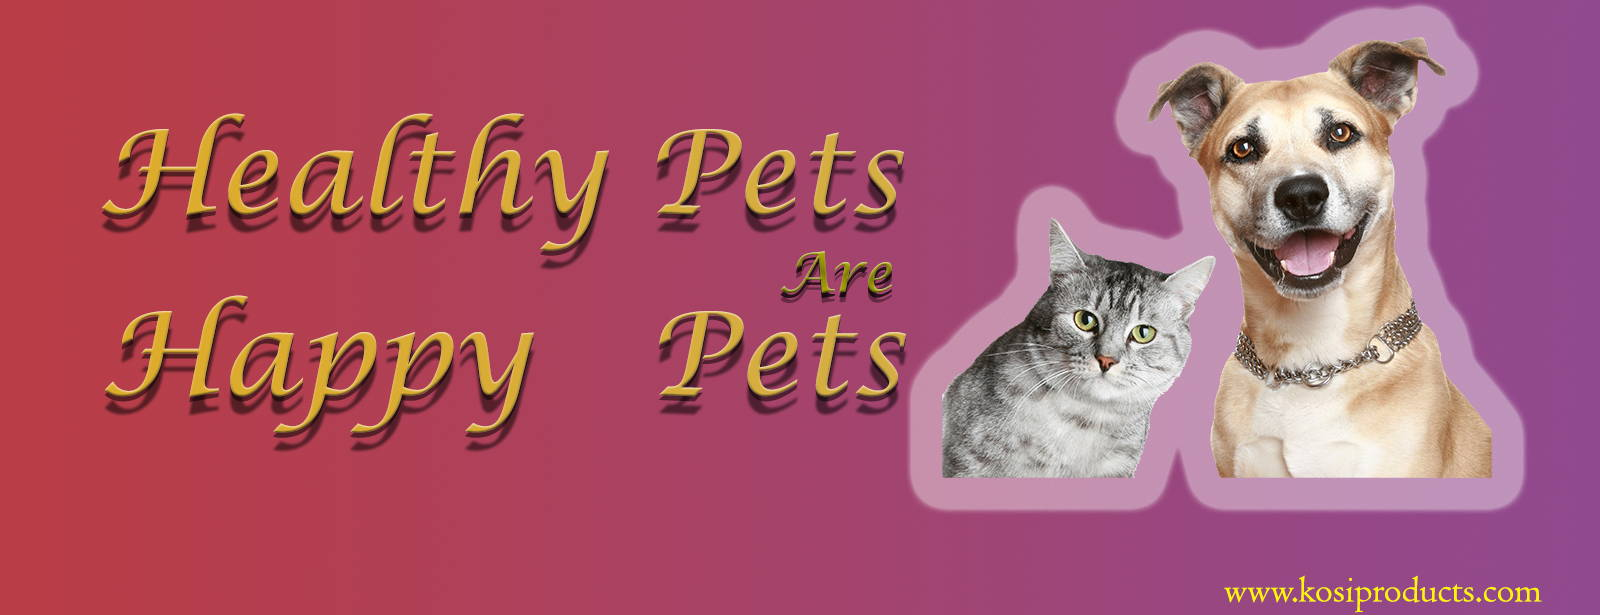 Healthy-Pets-Are-Happy-Pets-Kosipets